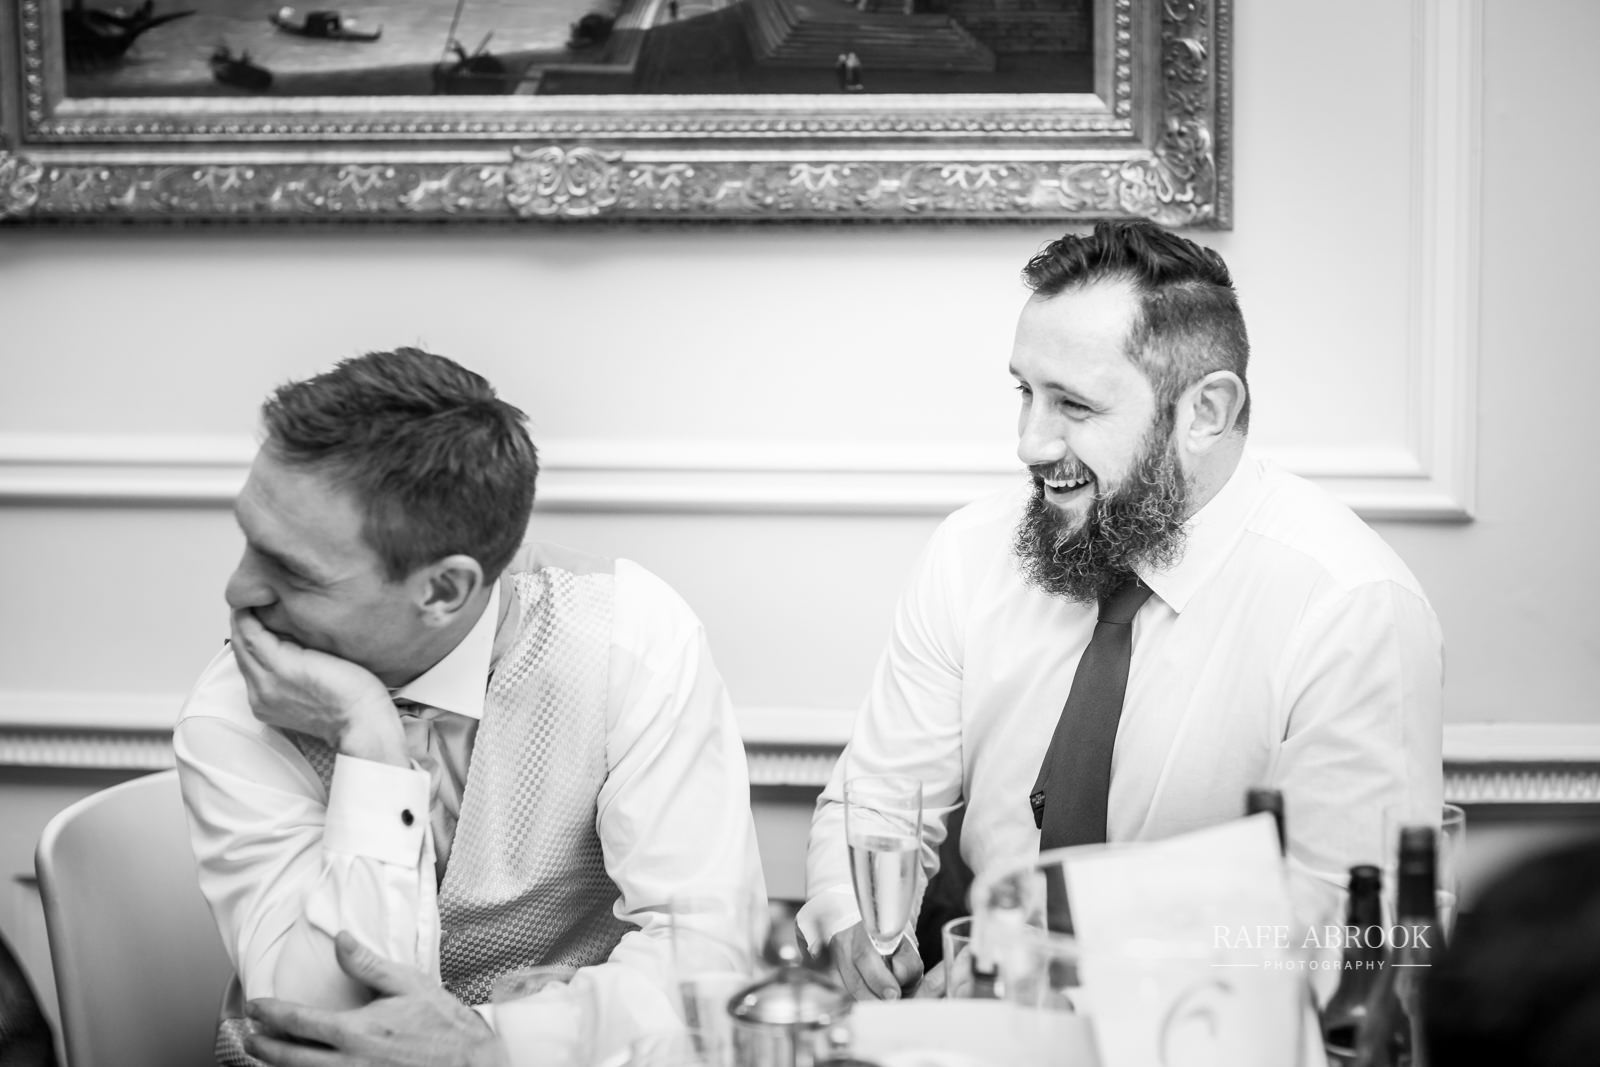 goldsborough hall wedding harrogate knaresborough yorkshire hertfordshire wedding photographer-1390.jpg